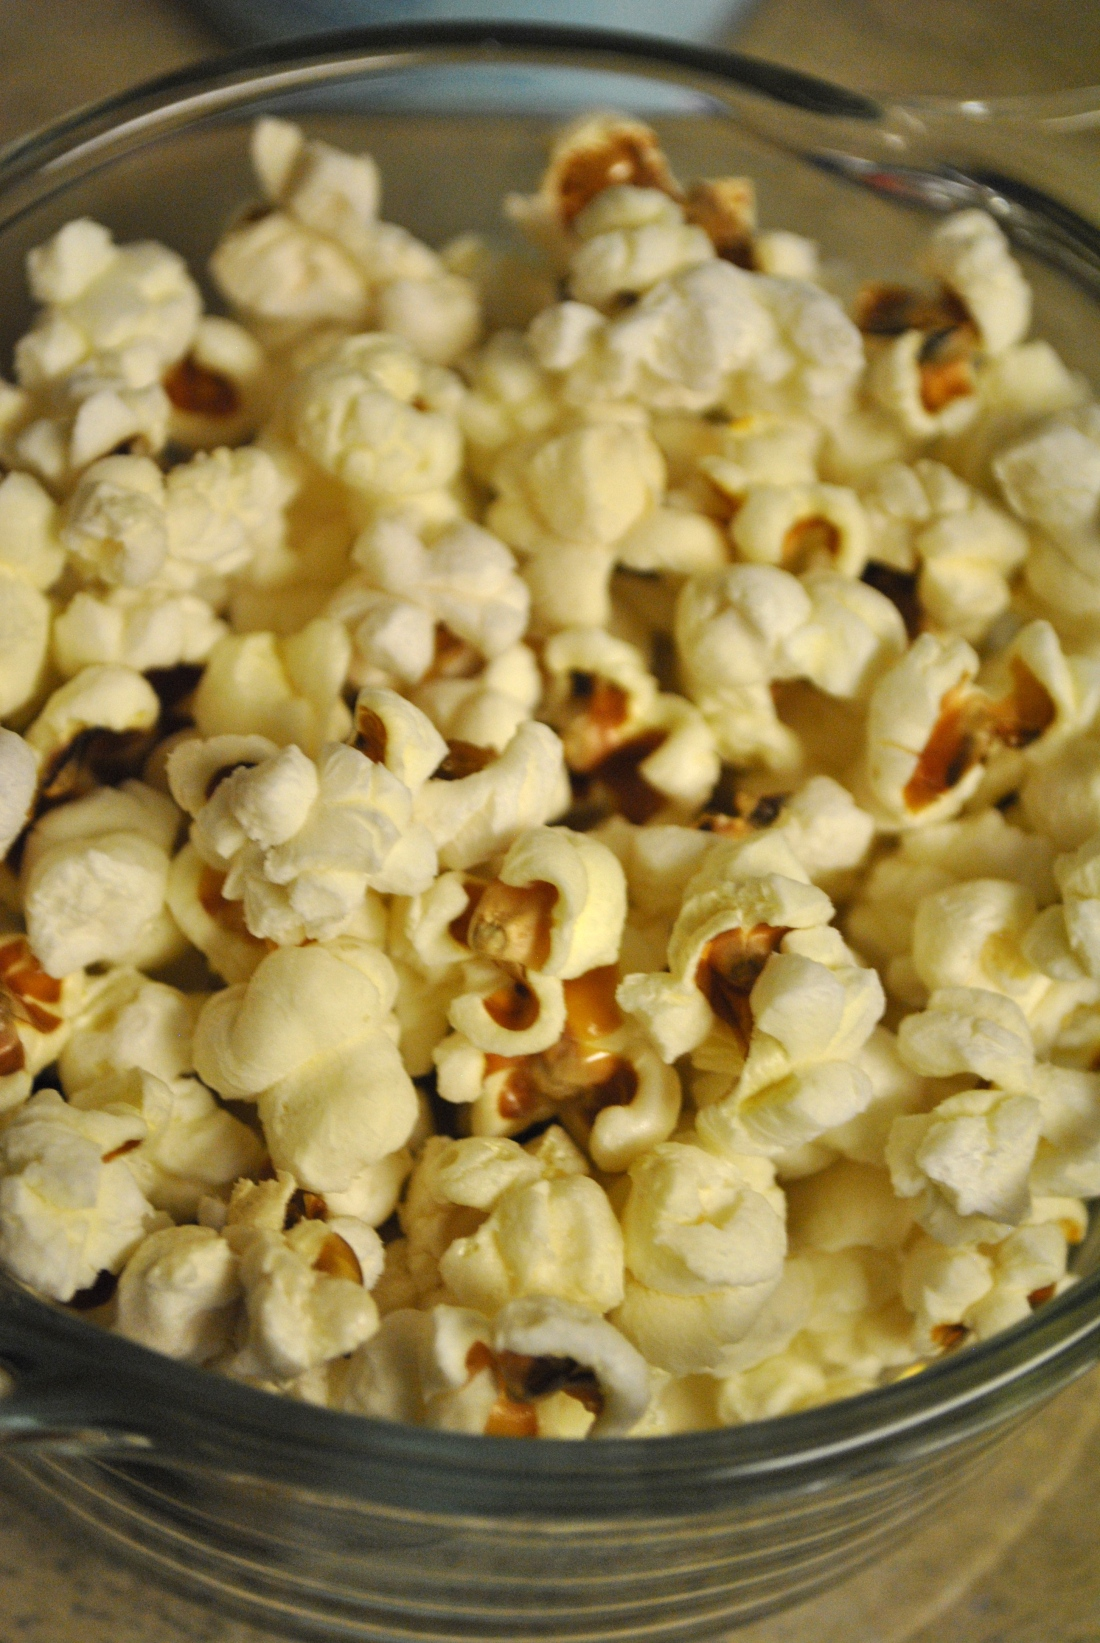 Perfect Popcorn: a perfect study break snack, made with olive oil and just a touch of butter and salt.